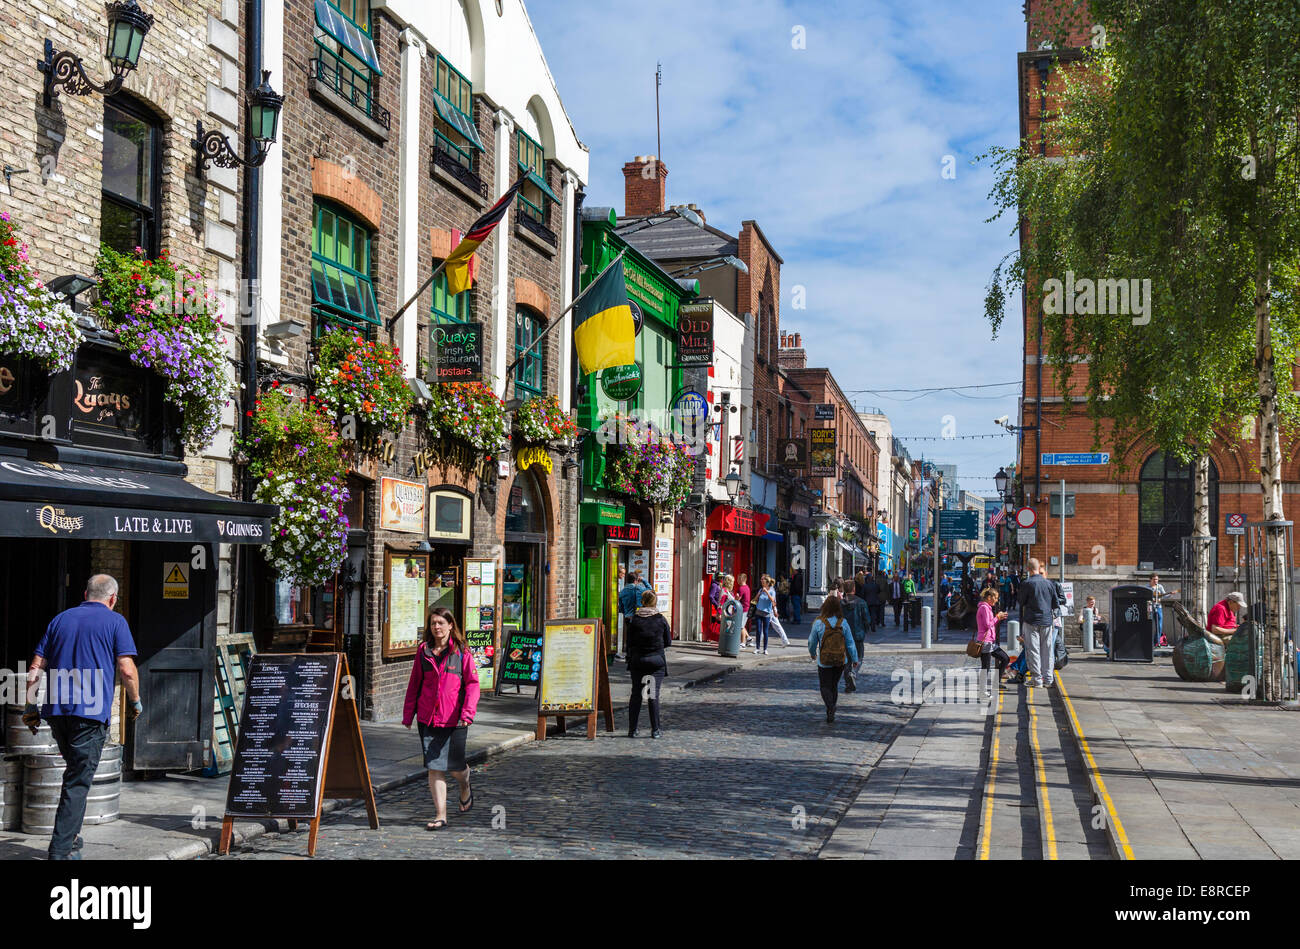 Pubs, restaurants and bars on Temple Bar in the city centre, Dublin City, Republic of Ireland - Stock Image